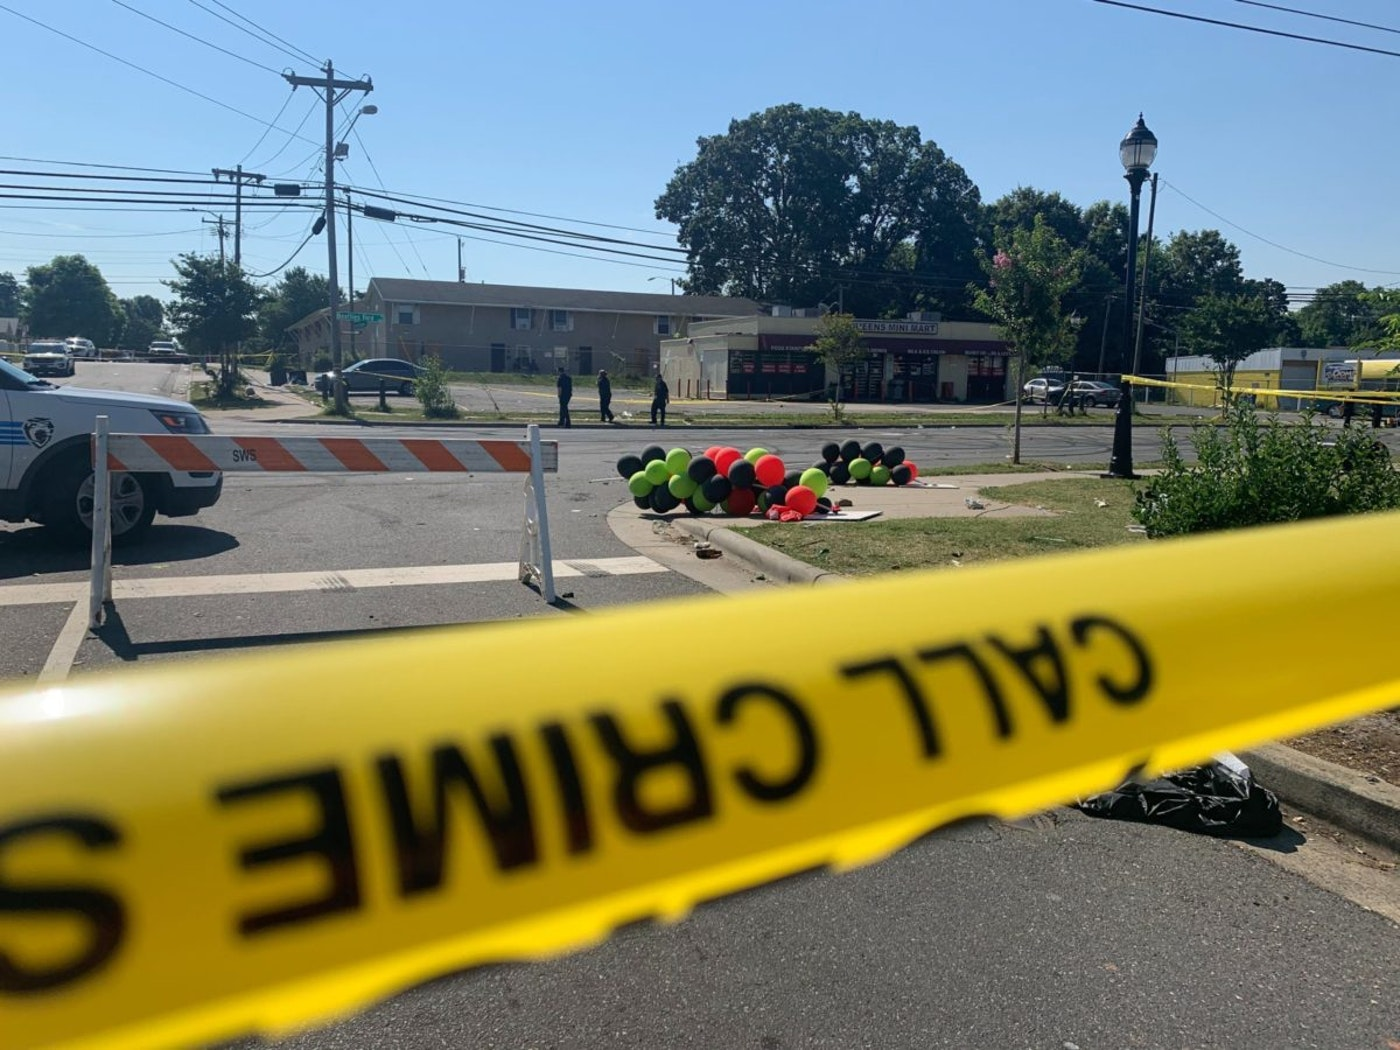 Police tape is seen near the scene of a shooting early Monday, June 22, 2020 in Charlotte, North Carolina, that resulted in four deaths and several more people injuries. (AP Photo/Sarah Blake Morgan)